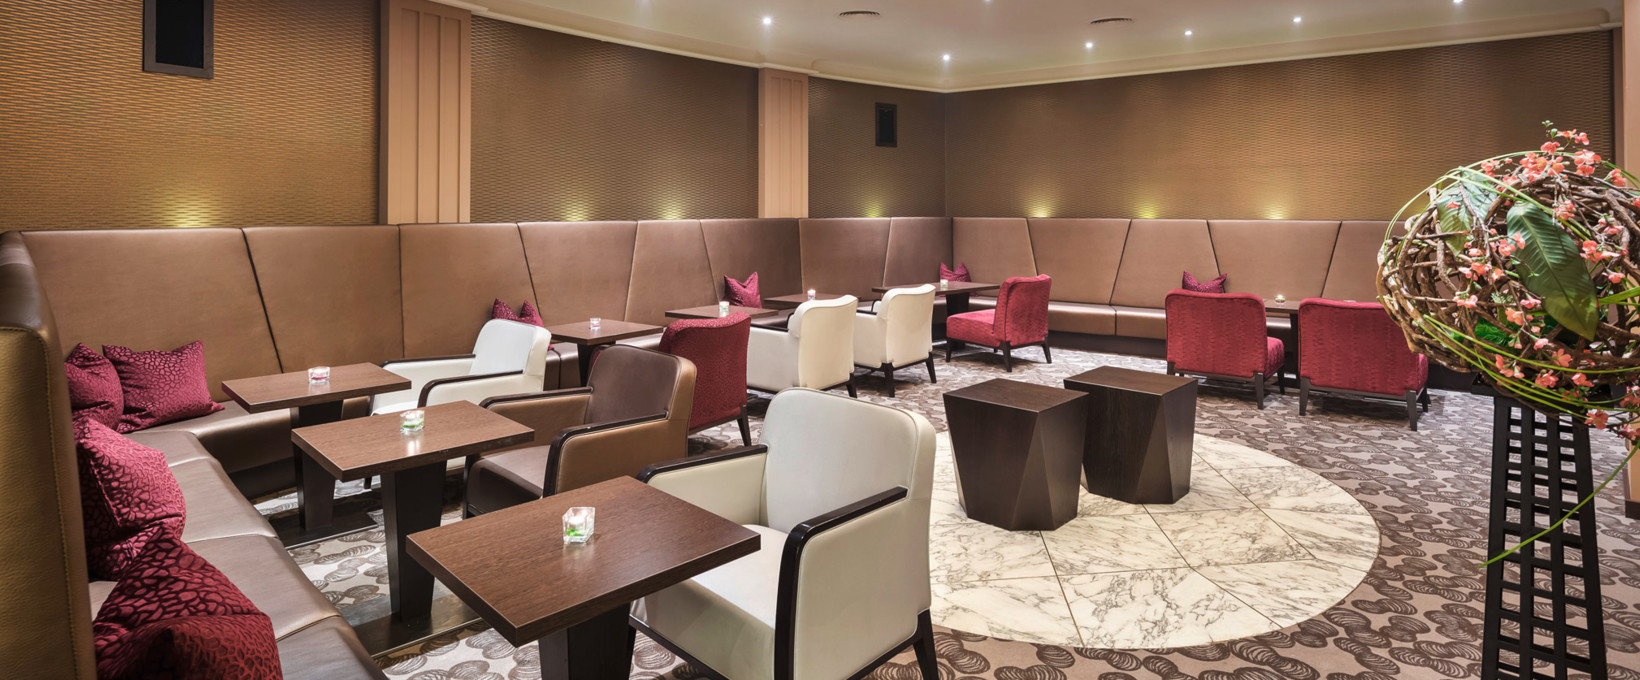 Hotel bar lounge with seating area | Hotel Schillerpark in Linz